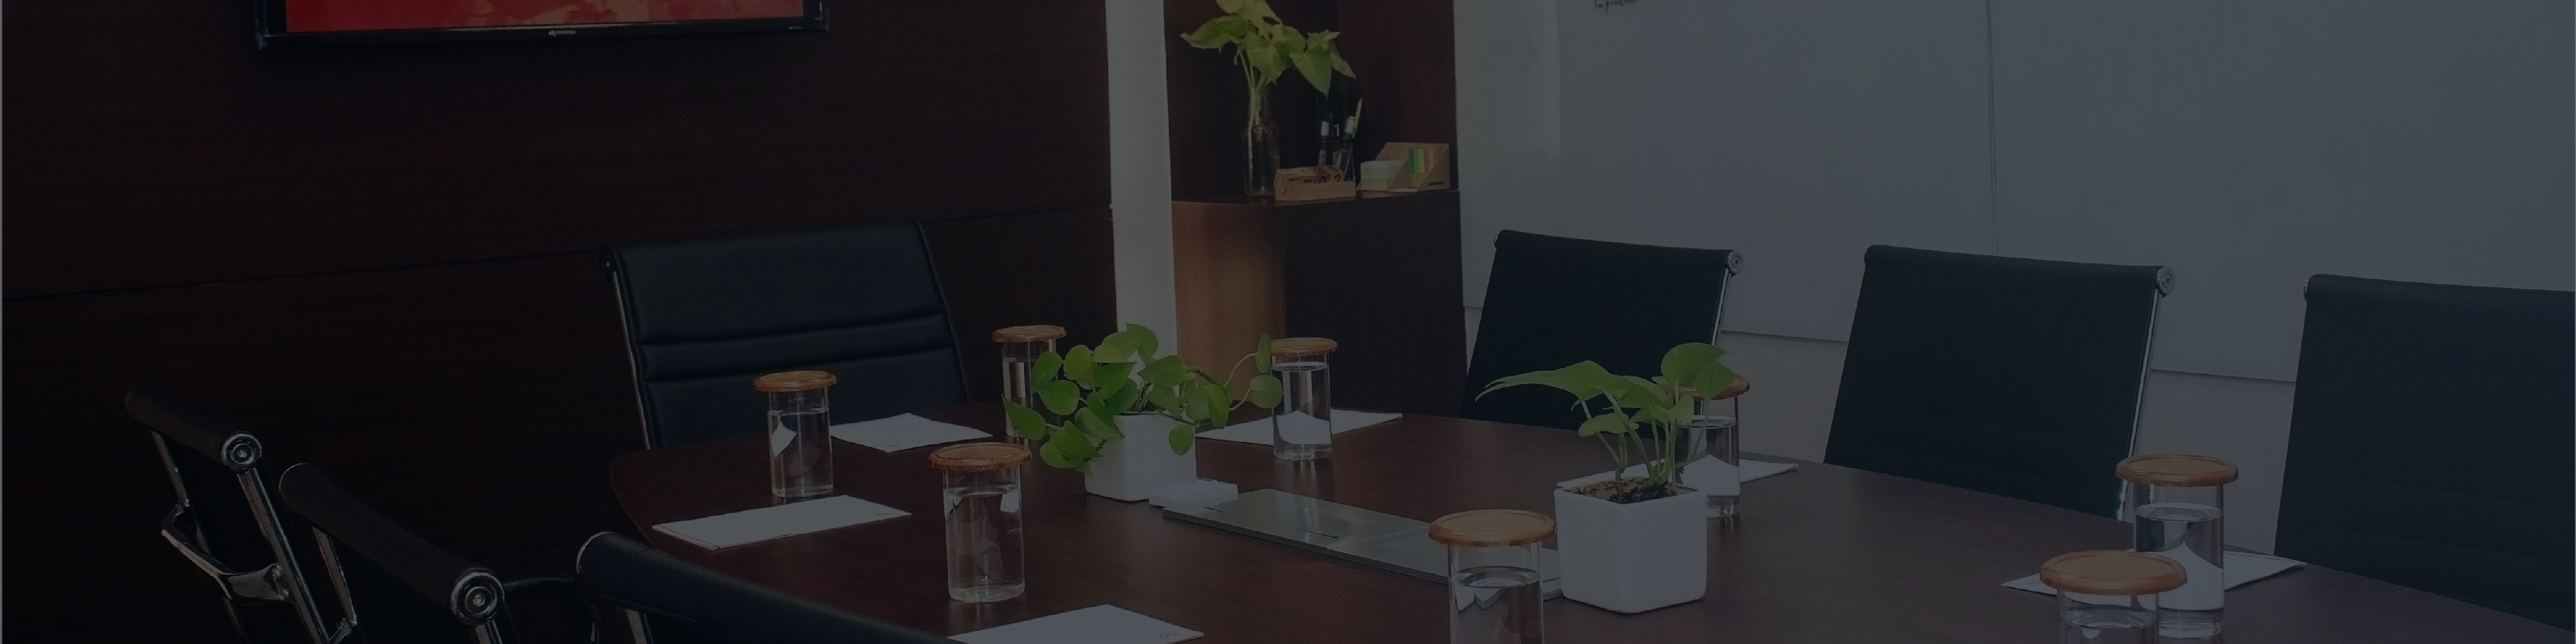 Meeting rooms in Noida